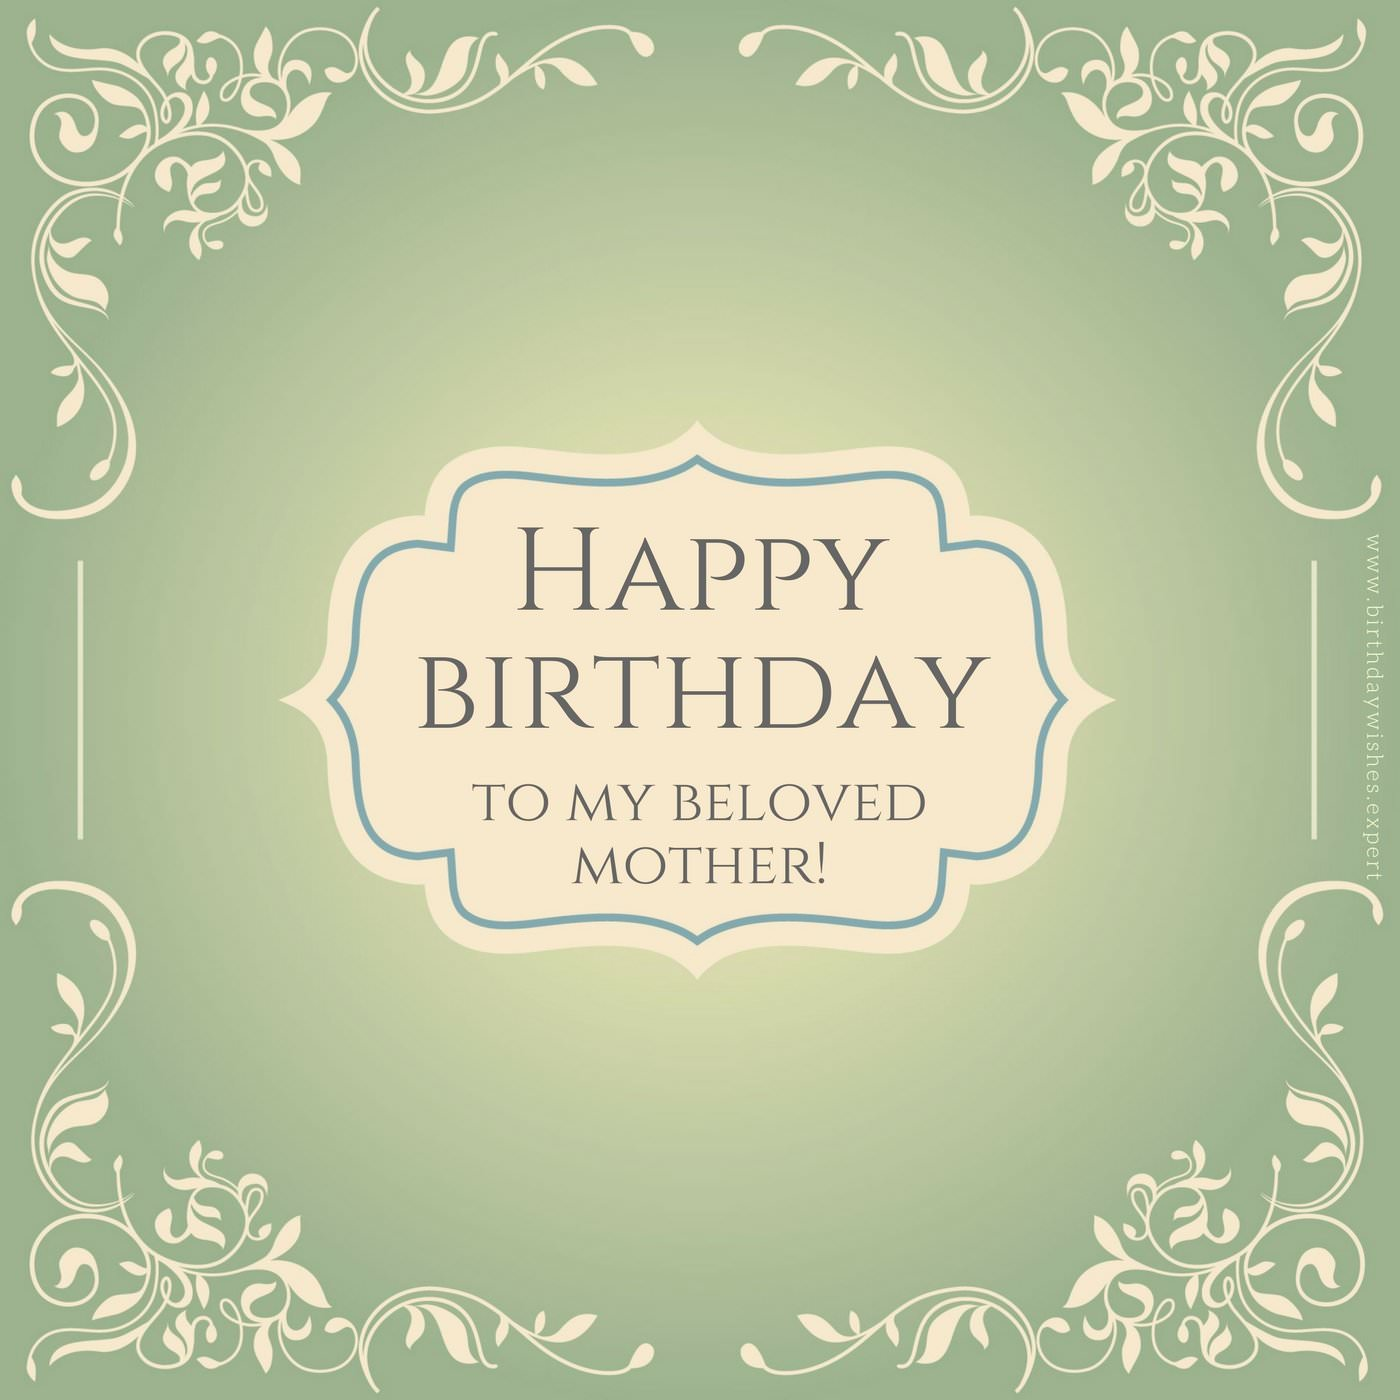 best mom in the world birthday wishes for your mother happy birthday to my beloved mother